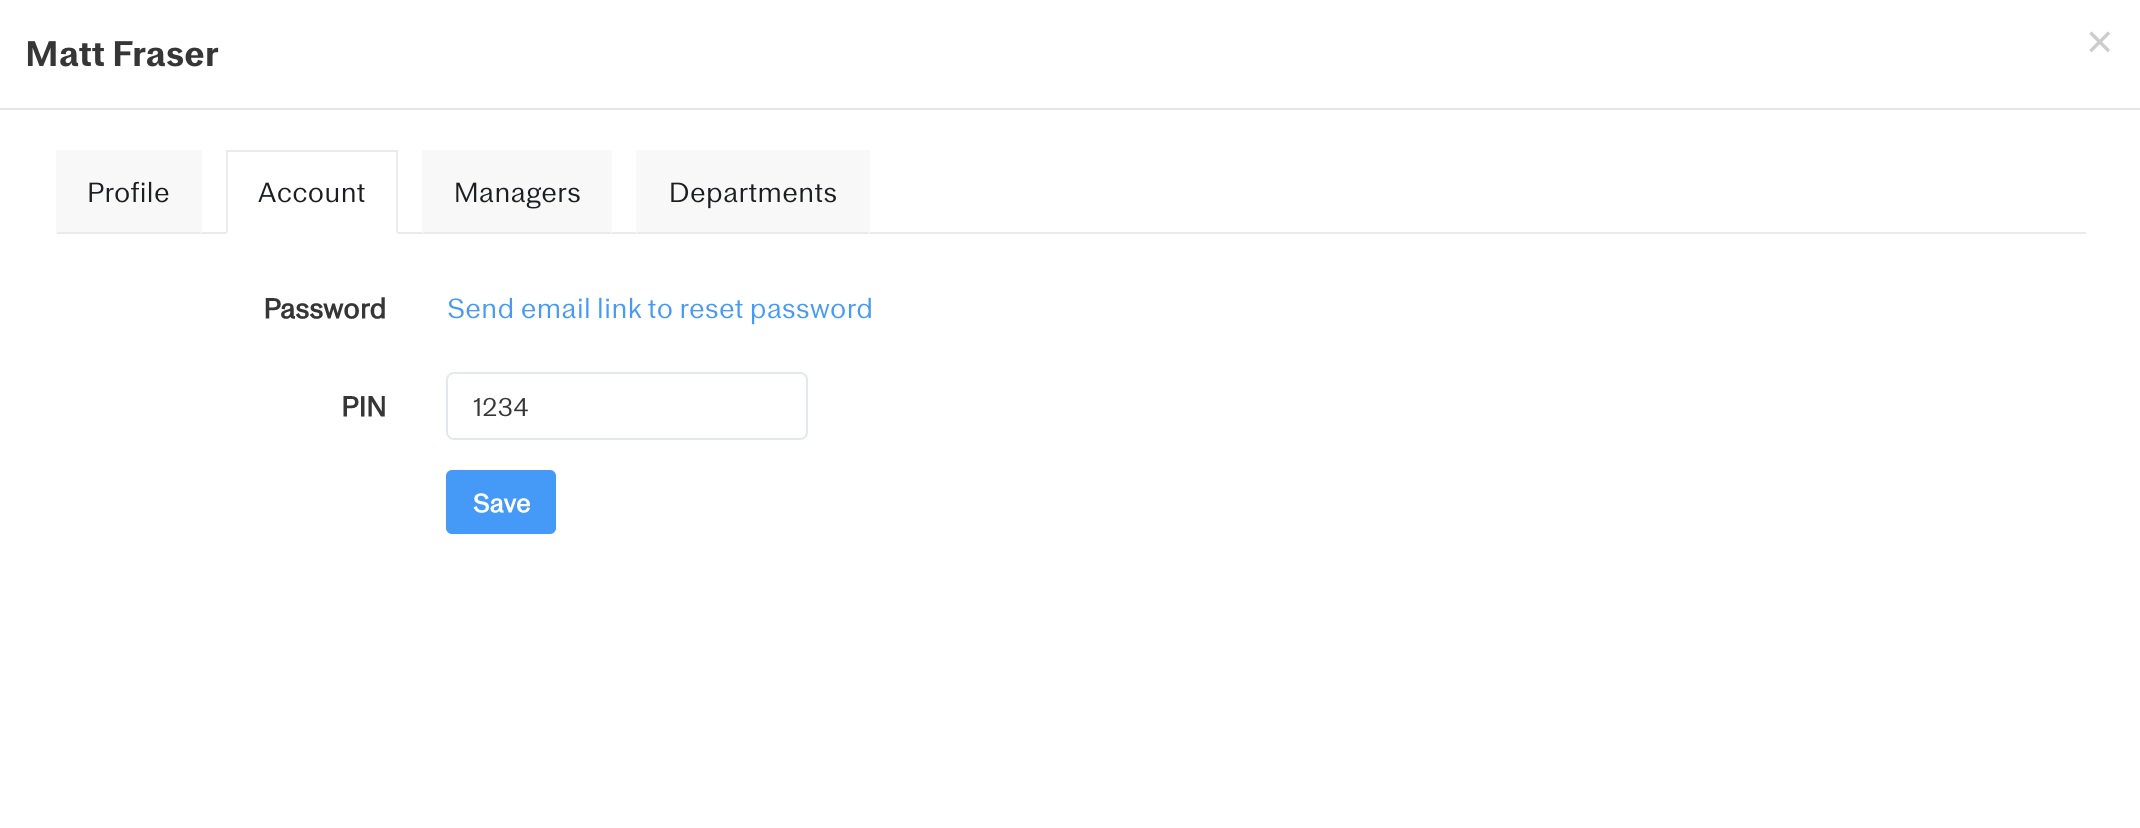 Screenshot showing where an employee may change their PIN within the 'Account' tab of their profile